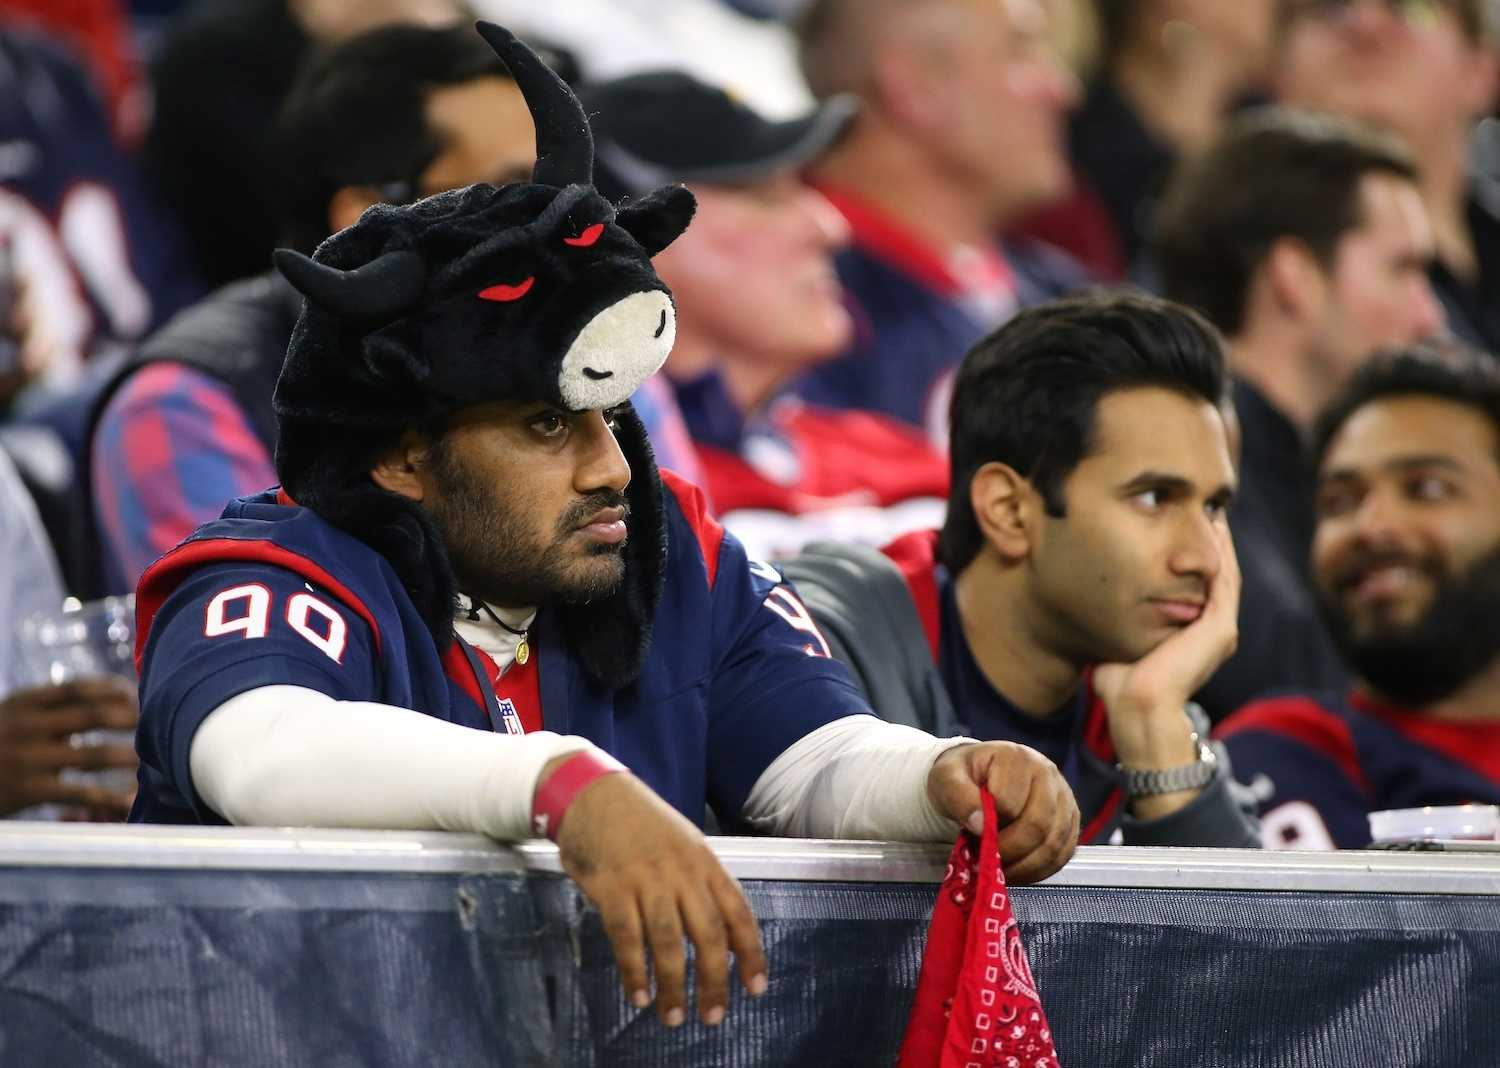 The Soon to Be Disasterous Season for the Texans